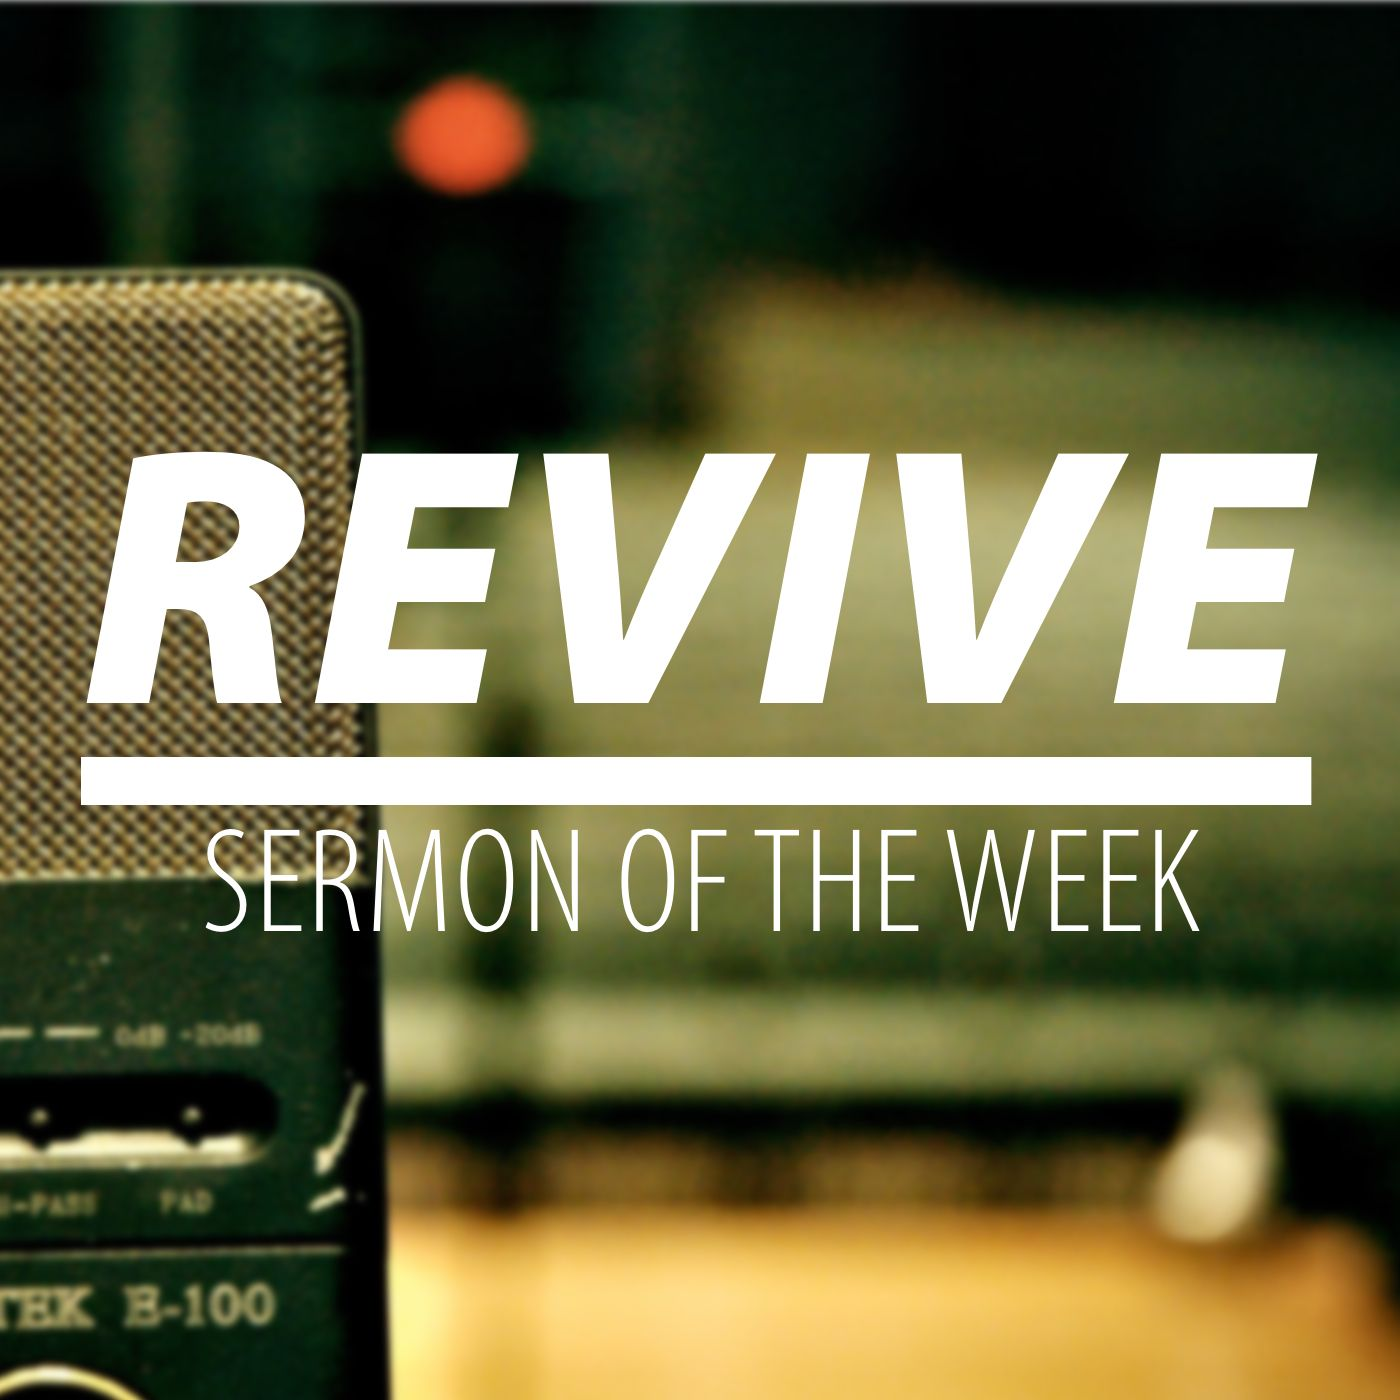 REVIVE SERMON OF THE WEEK